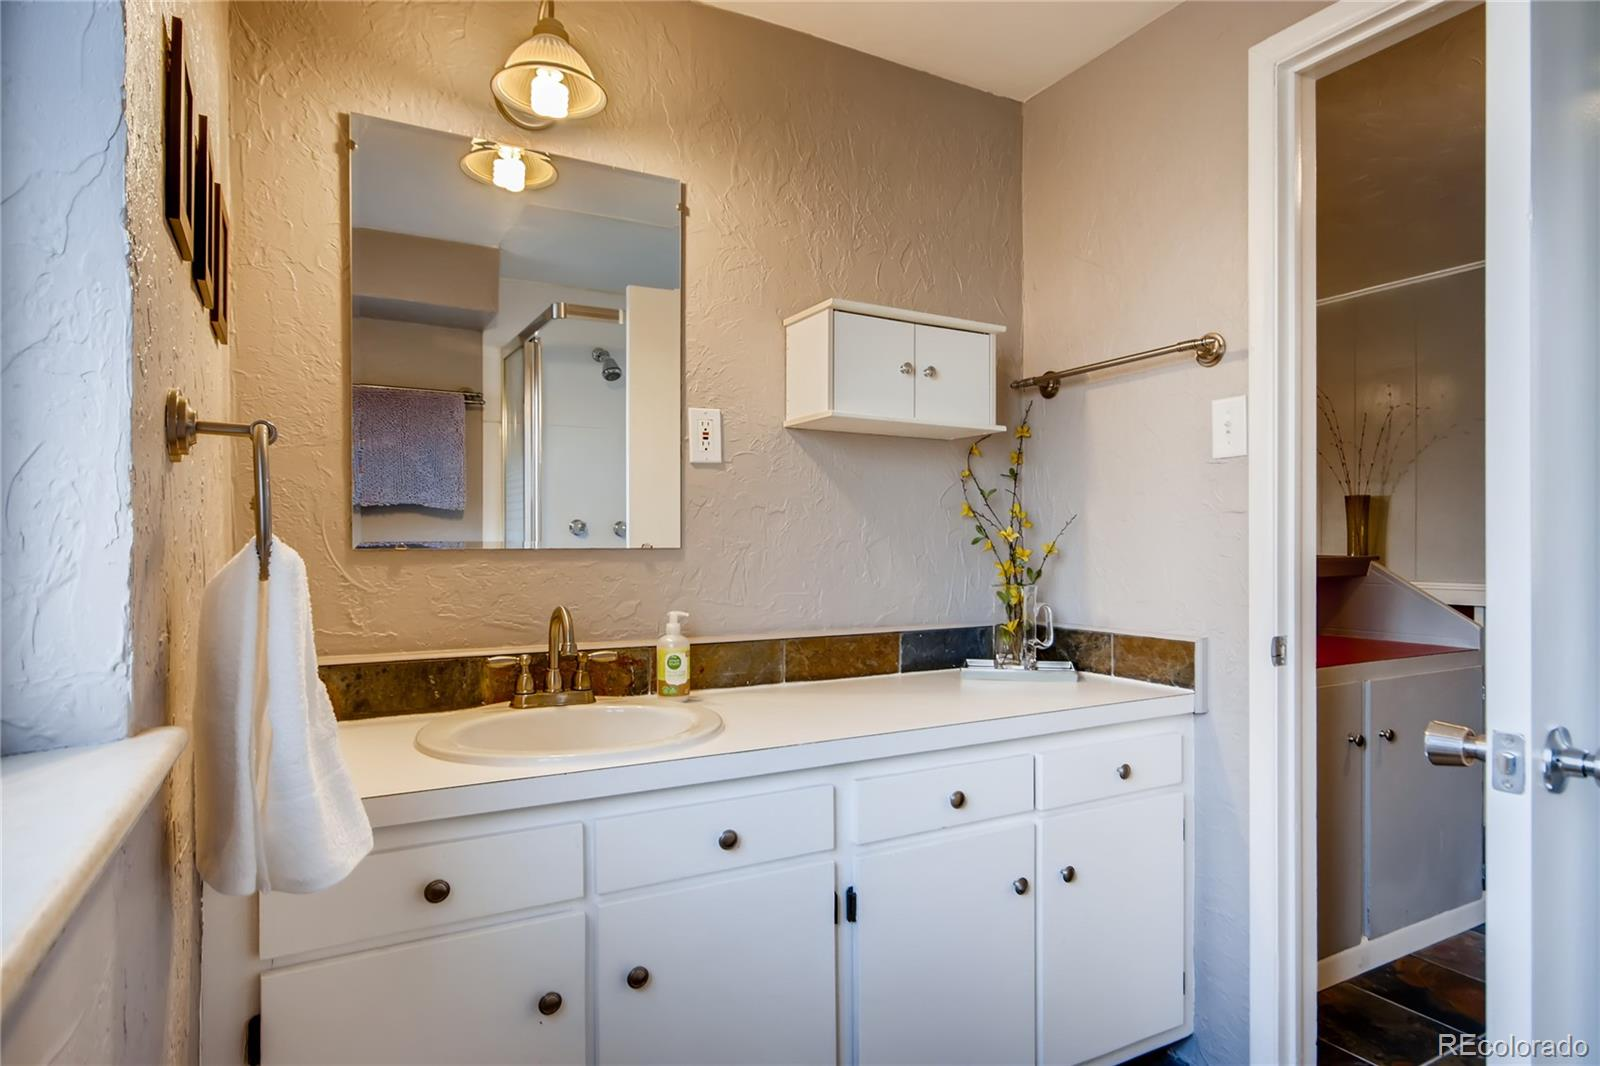 MLS# 9197299 - 24 - 10511 W 22nd Place, Lakewood, CO 80215